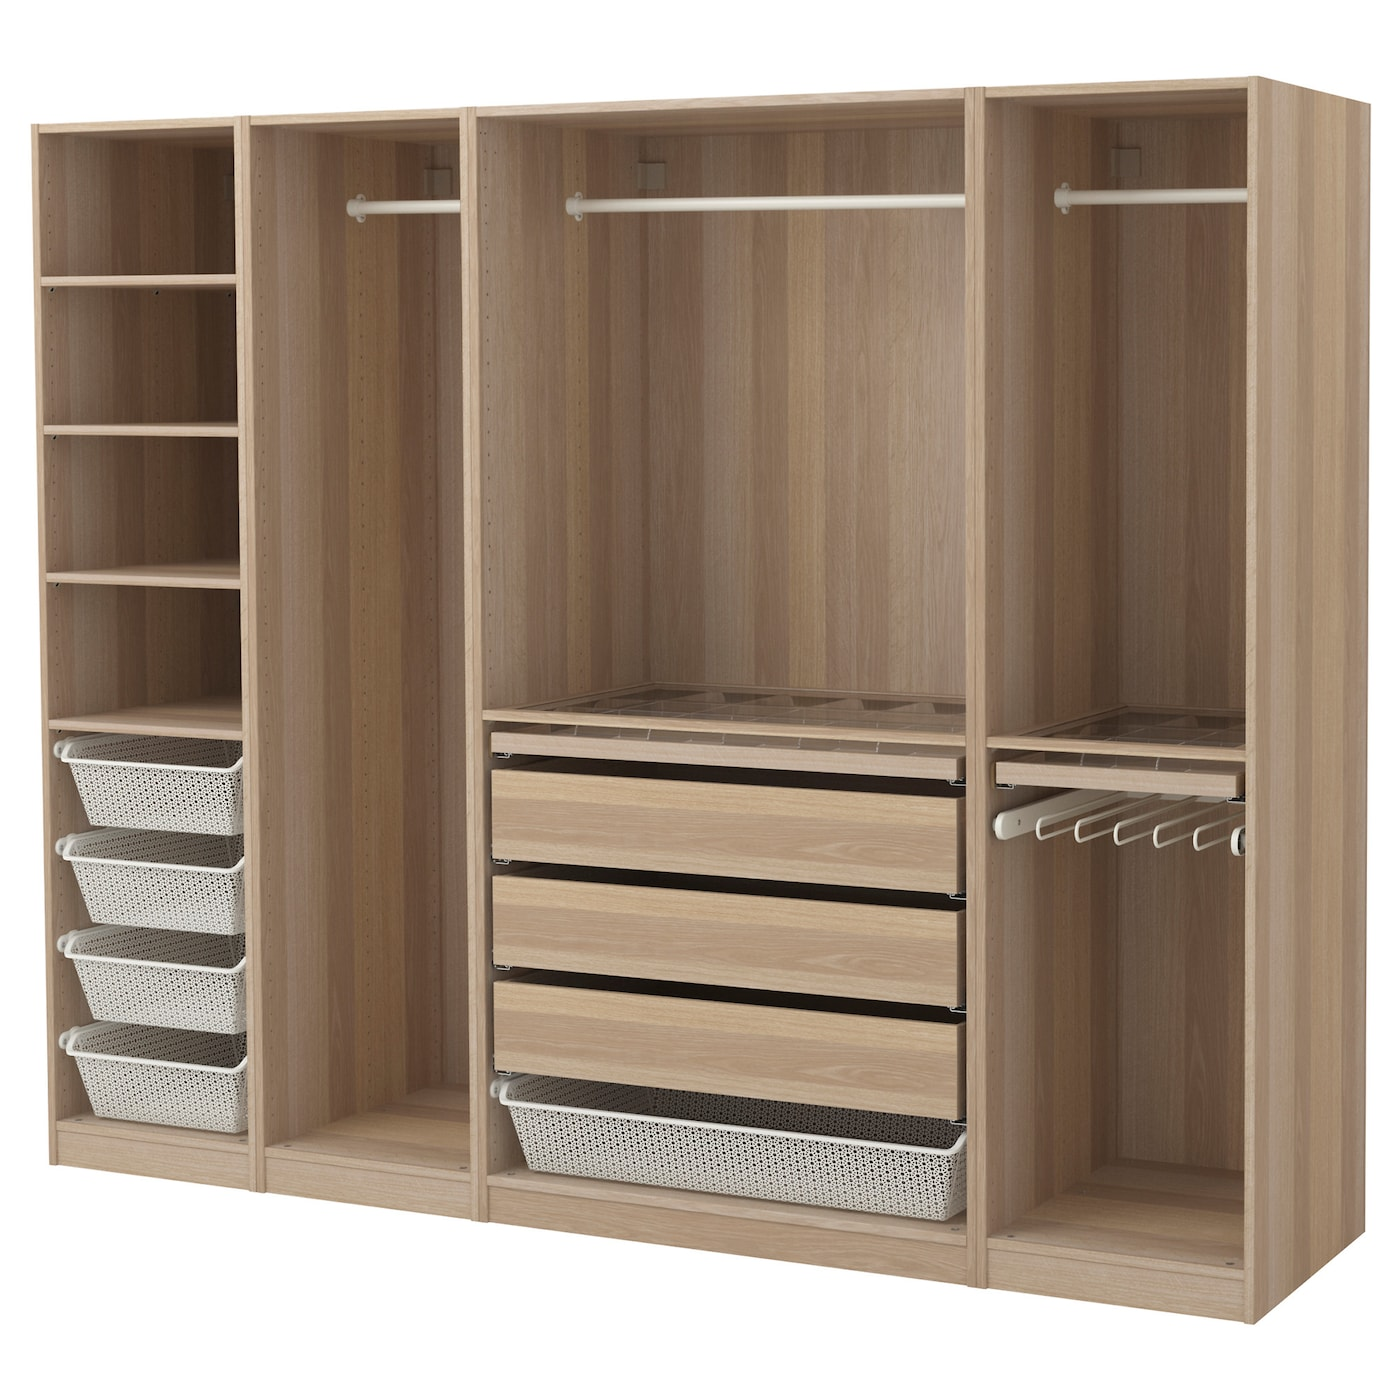 pax wardrobe white stained oak effect 250x58x201 cm ikea. Black Bedroom Furniture Sets. Home Design Ideas